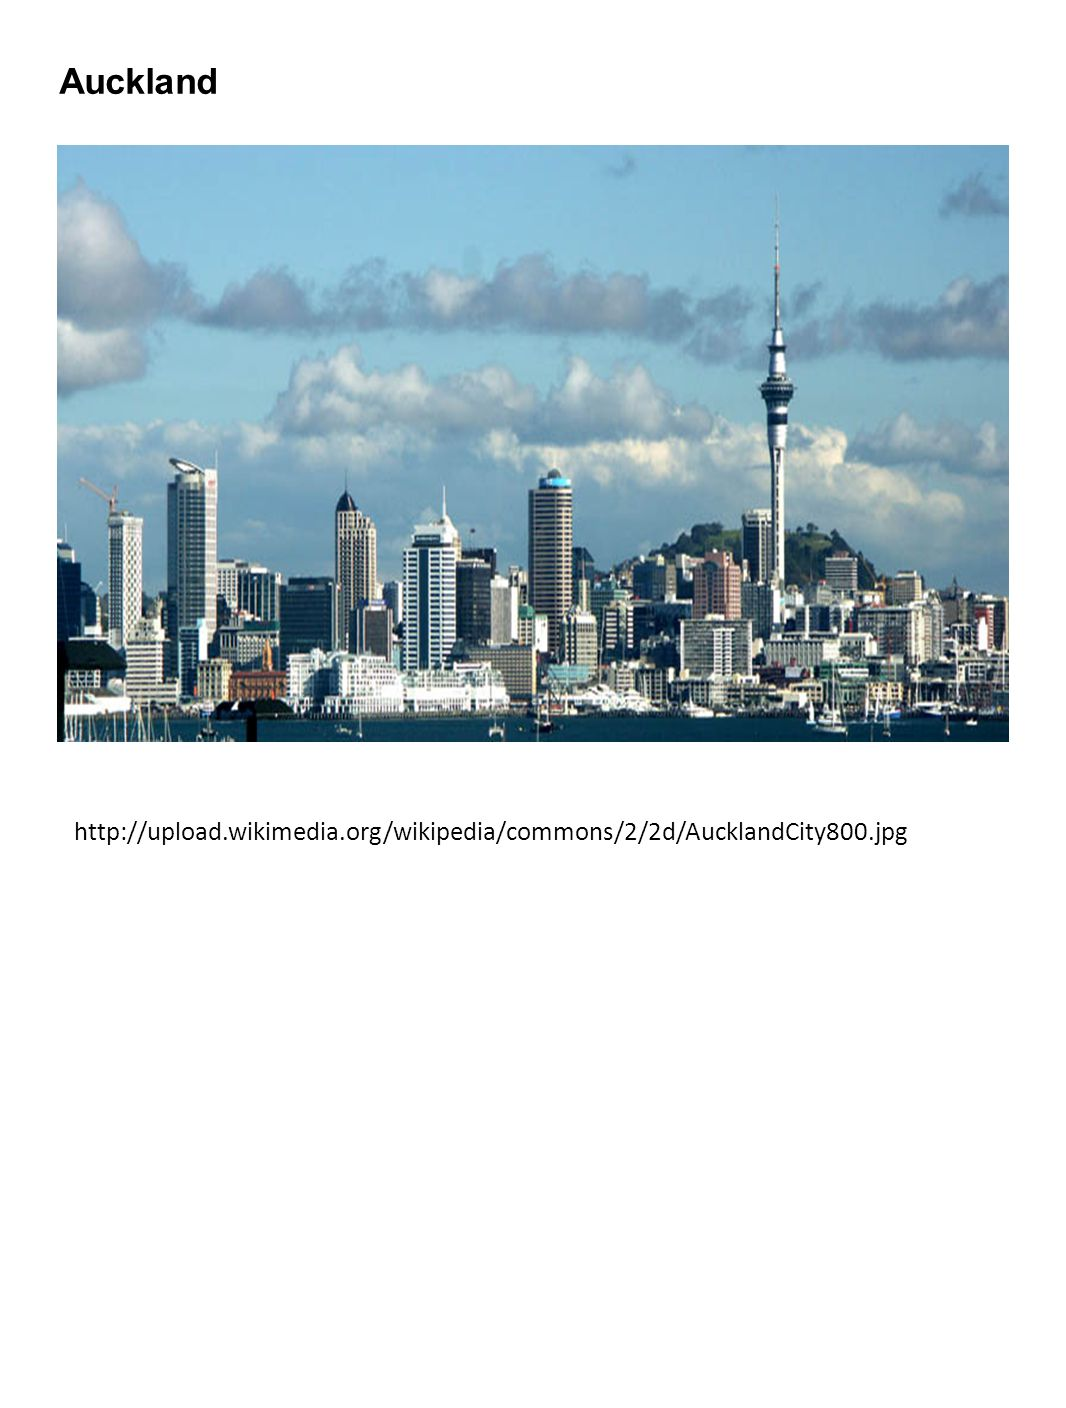 Auckland http://upload.wikimedia.org/wikipedia/commons/2/2d/AucklandCity800.jpg